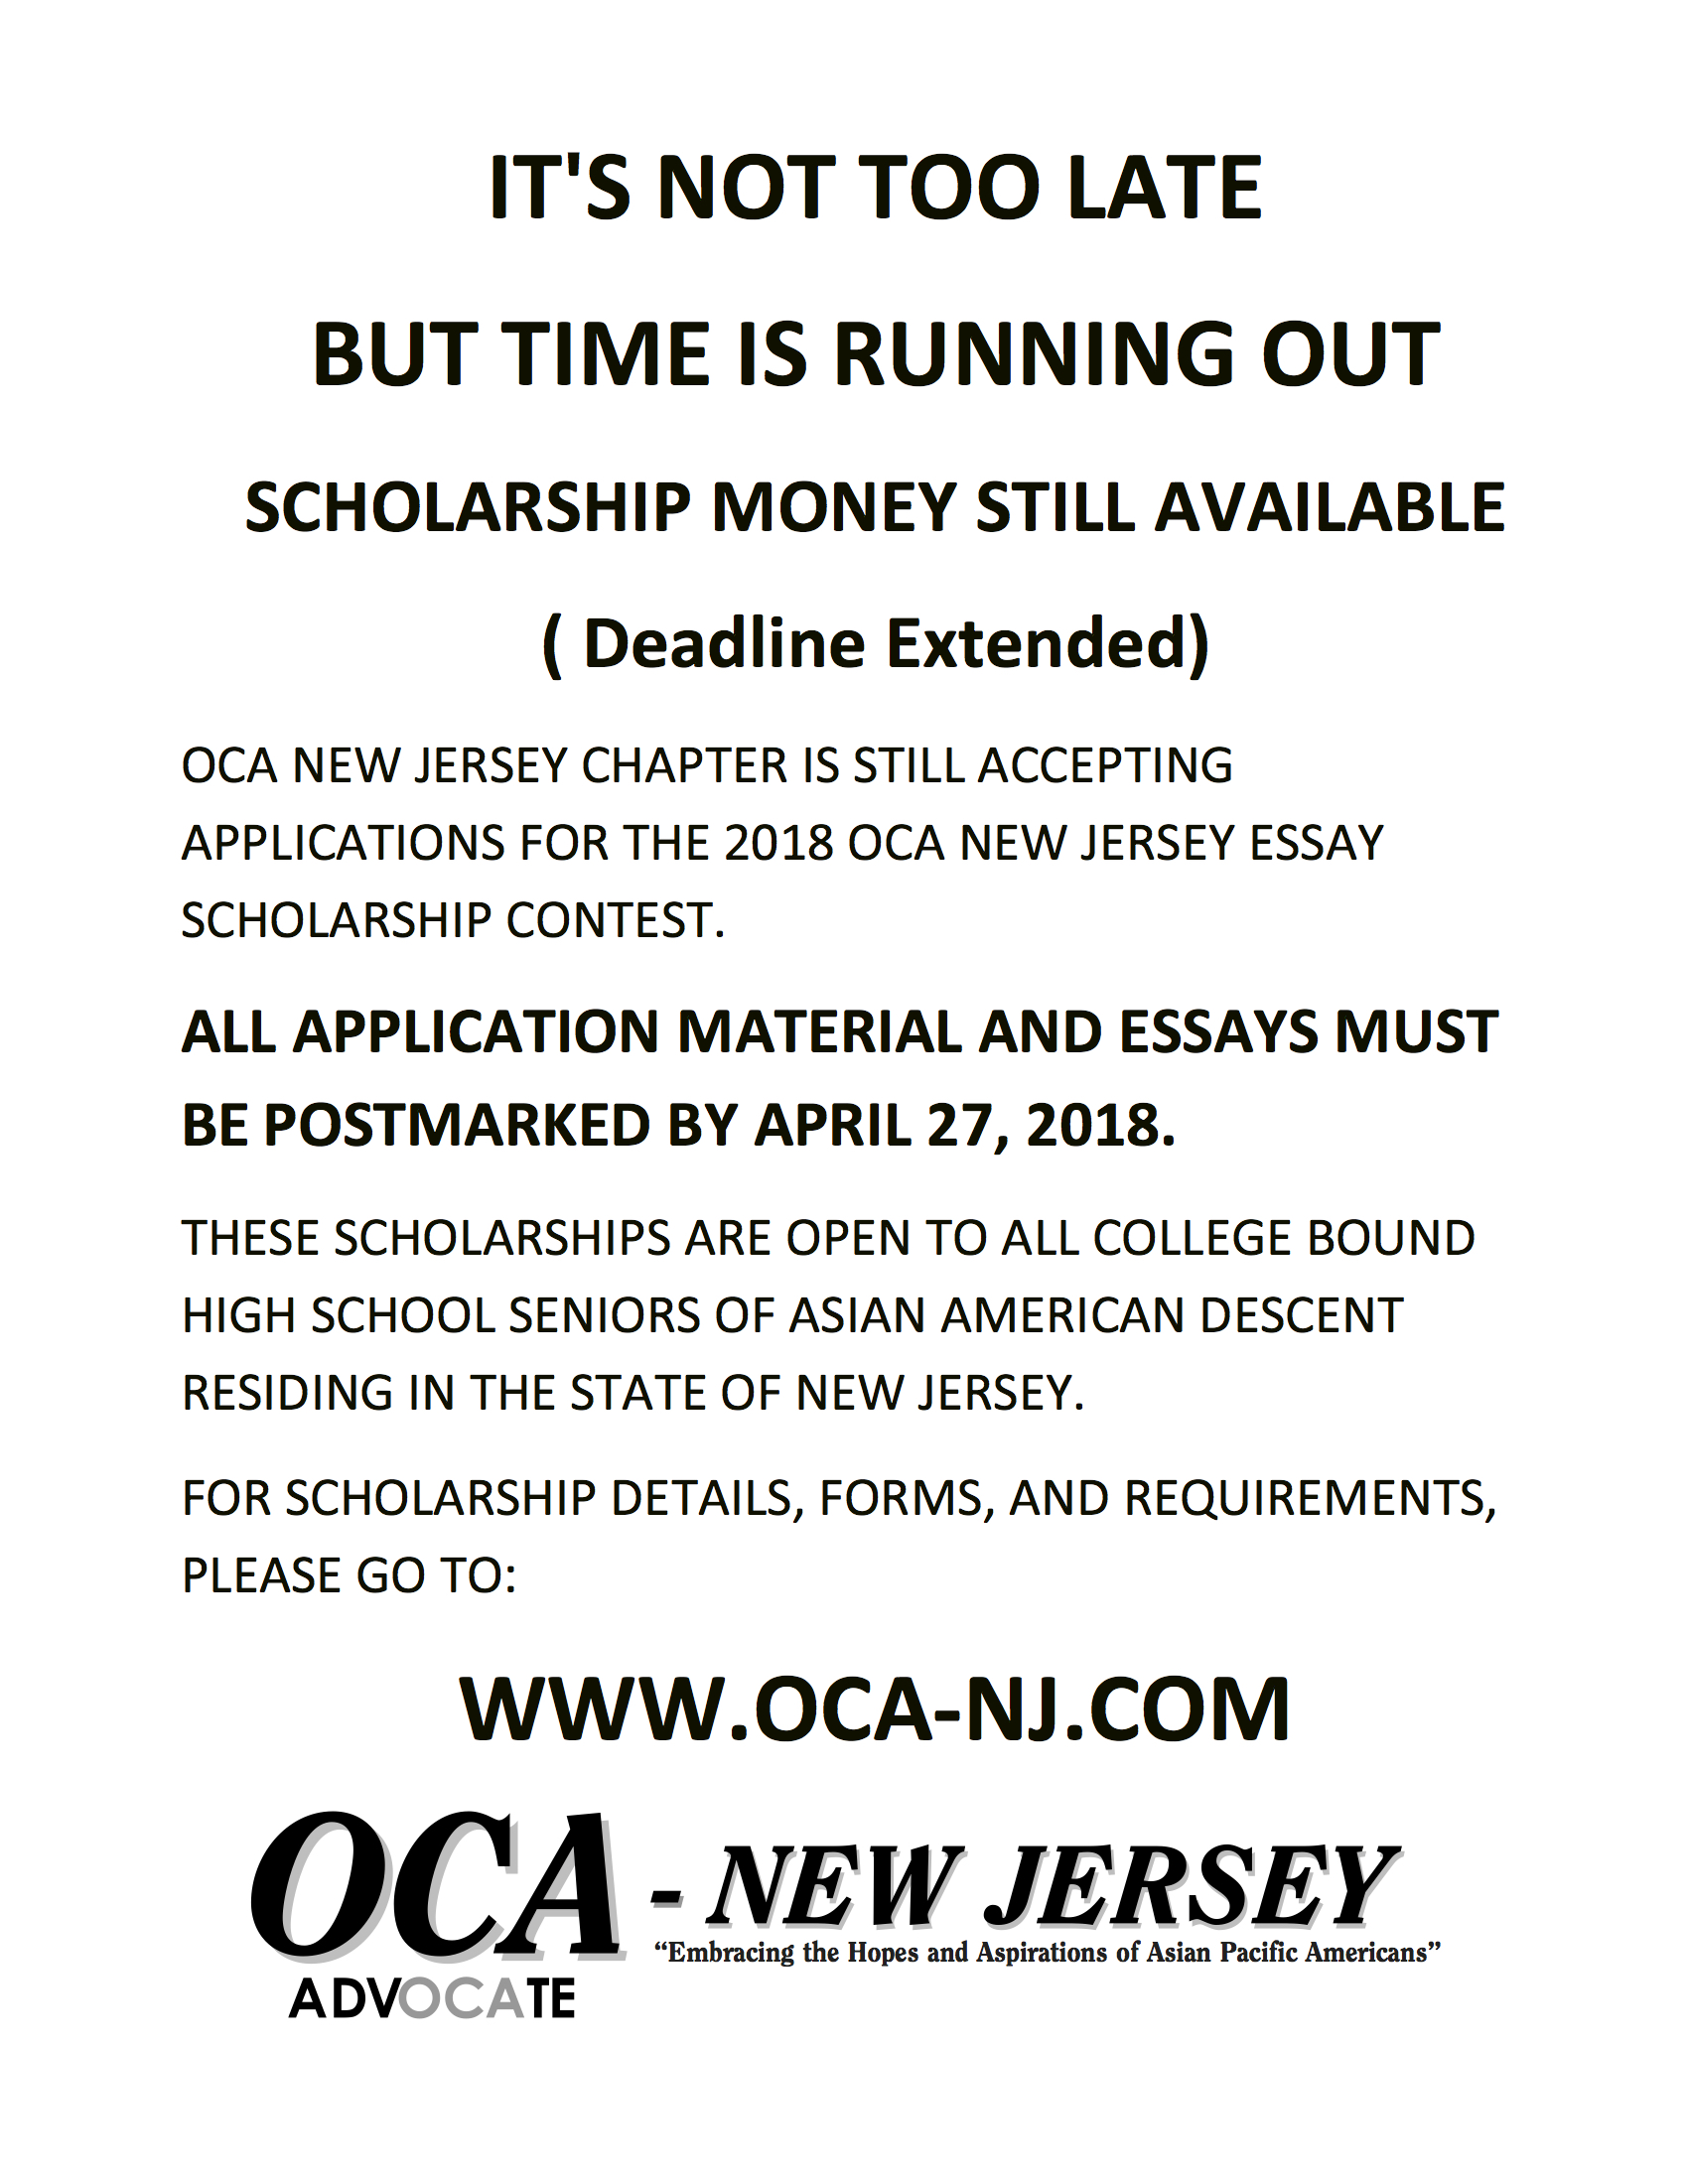 014 Essay Example Scholarships Entended Deadline Oca Nj Shocking 2018 For International Students Examples Canada 2019 Full